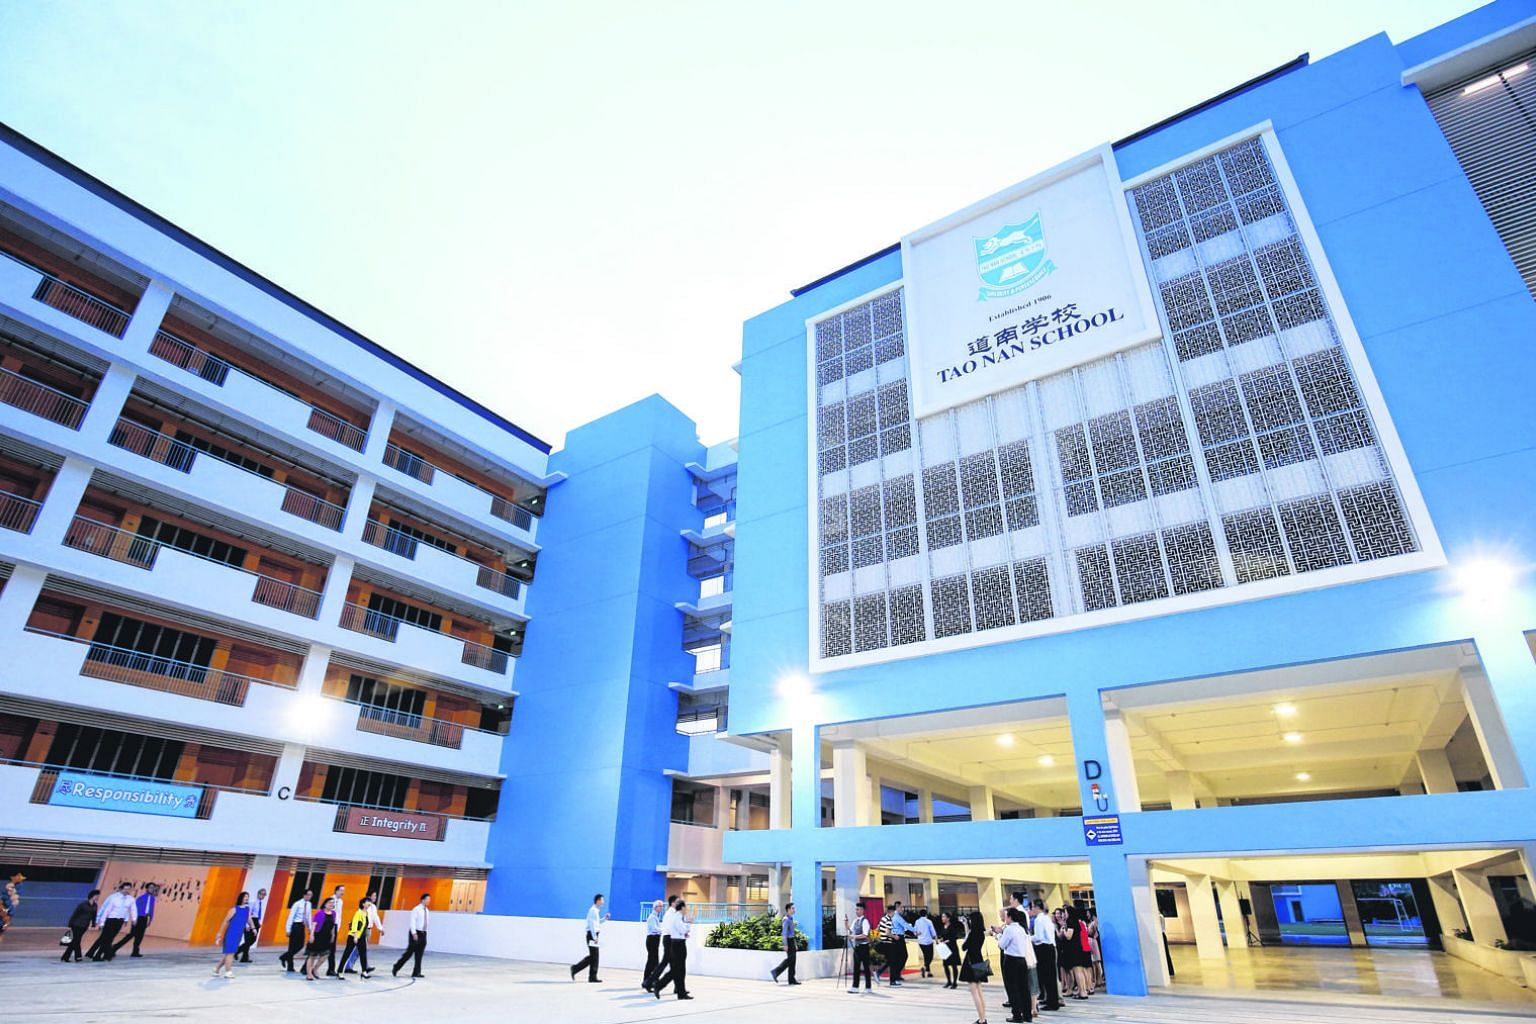 Among the 10 schools that have been oversubscribed in Phase 2B and Phase 2C every year since 2006 is Tao Nan Primary (left). Nanyang Primary (left, below) is among the 55 that have been oversubscribed in Phase 2C every year since 2006.